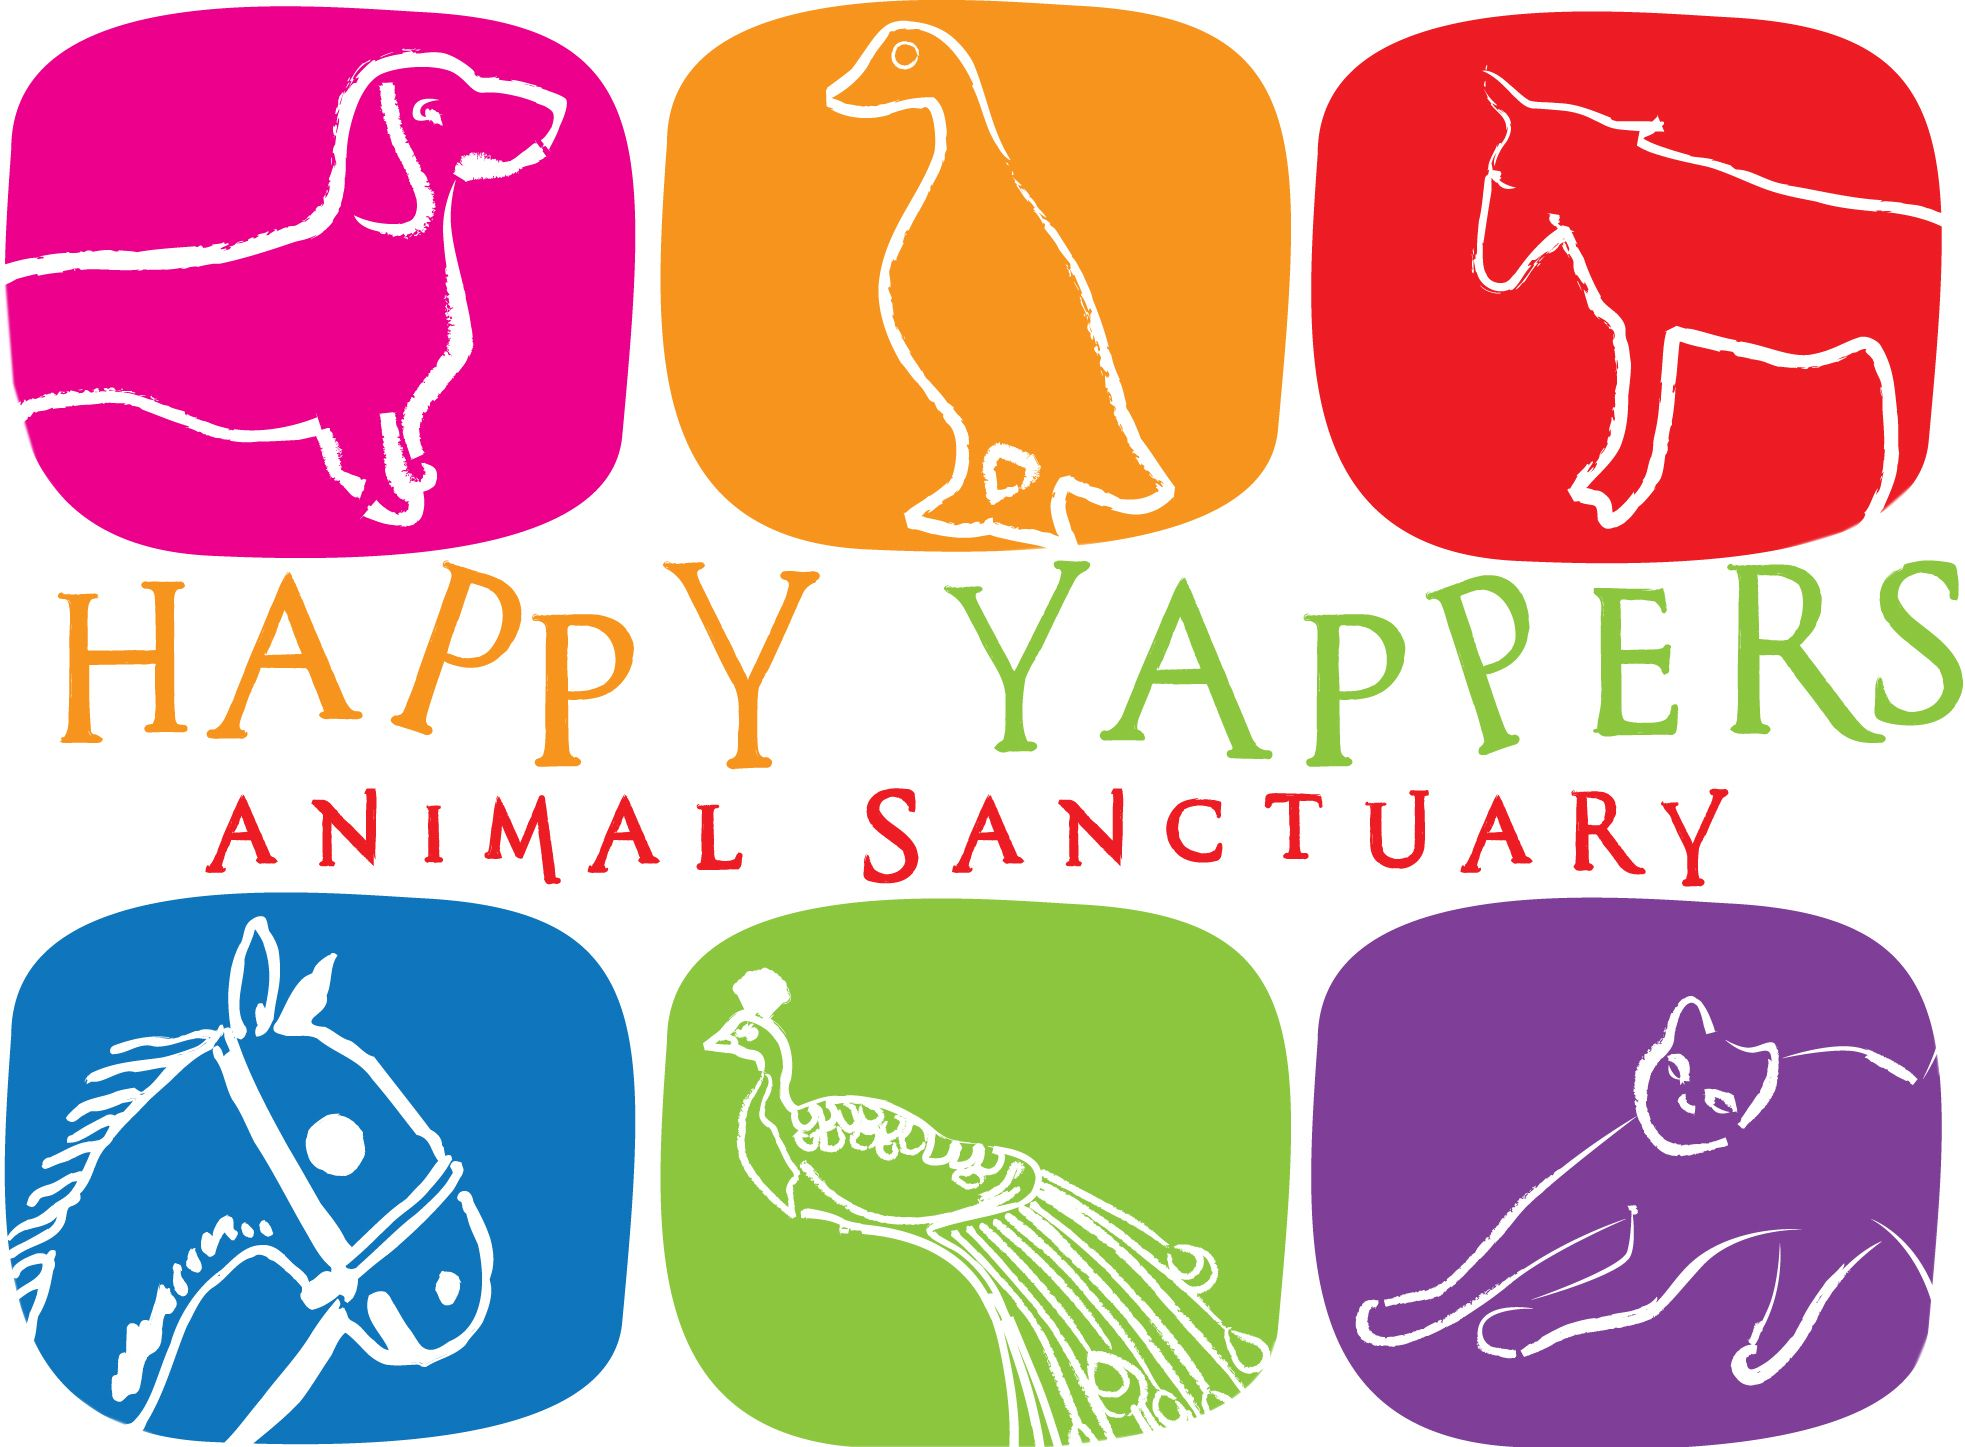 Happy Yappers Animal Charity Thumb Image